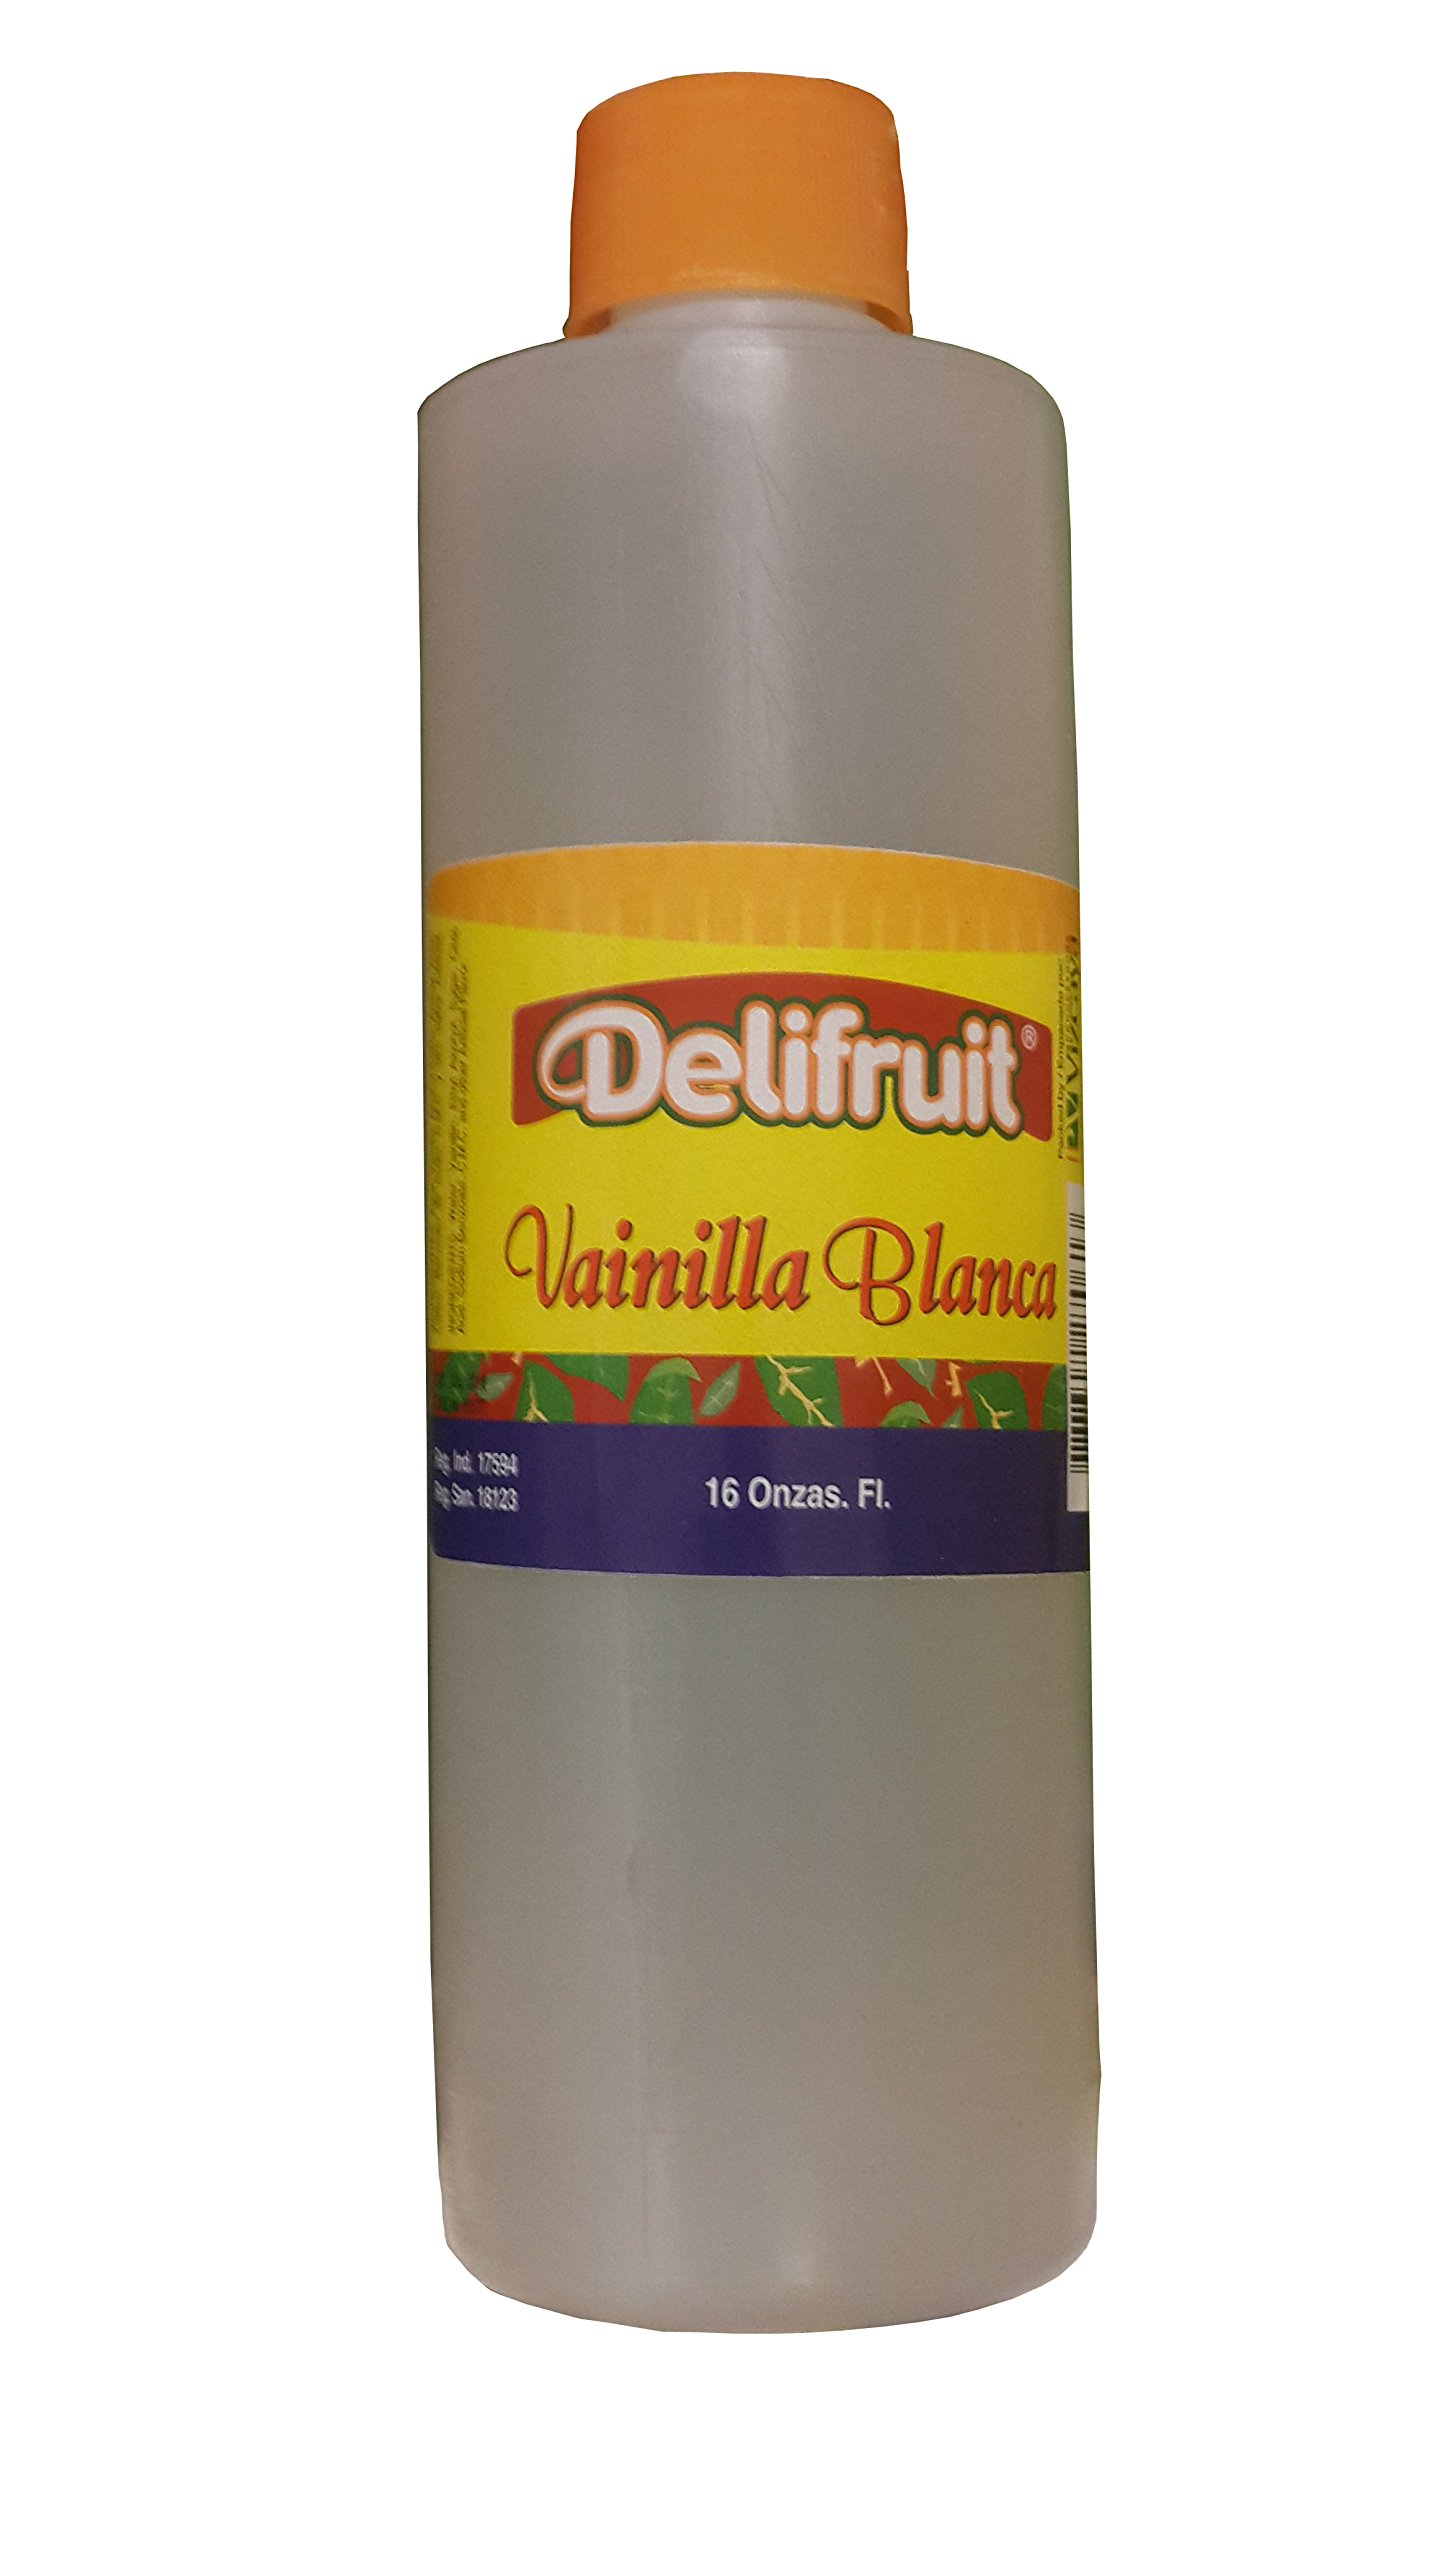 Delifruit Clear Vanilla Extract From Dominican Republic 16 Oz.